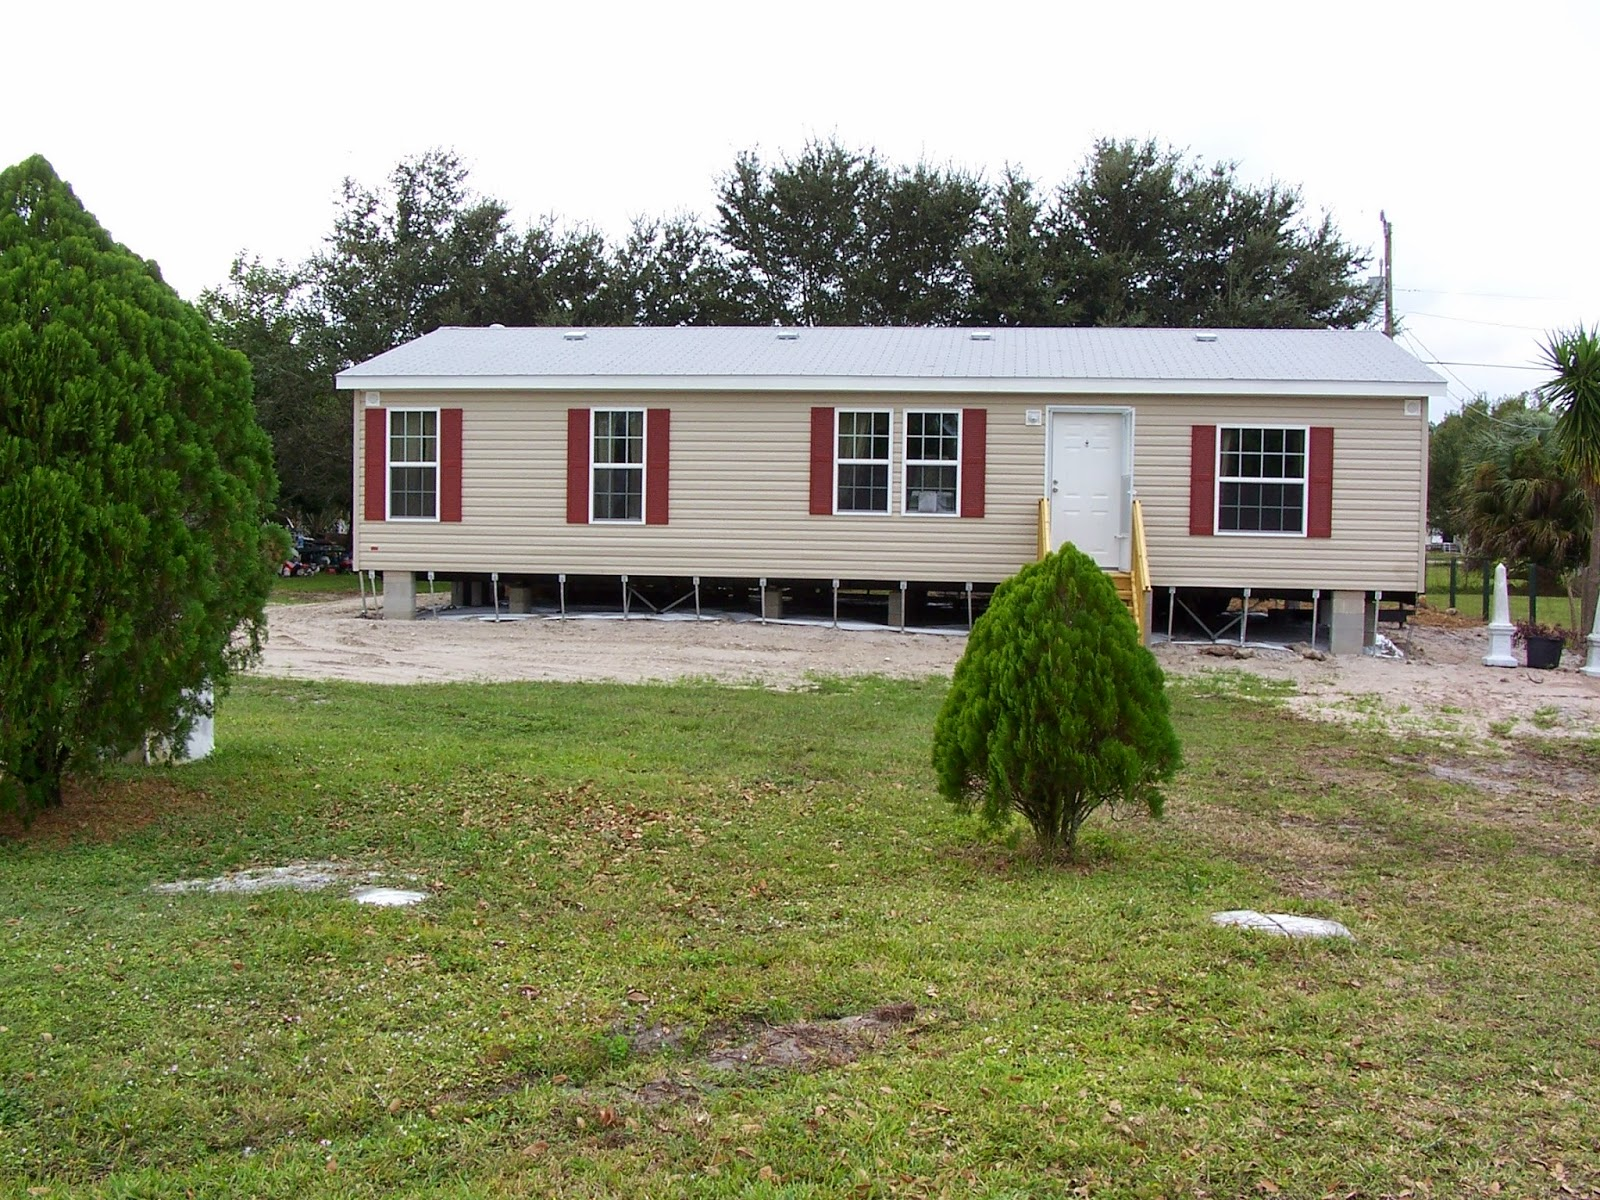 Zack 54 795 on display 3 bedrooms 2 baths double wide for 6 bedroom double wide